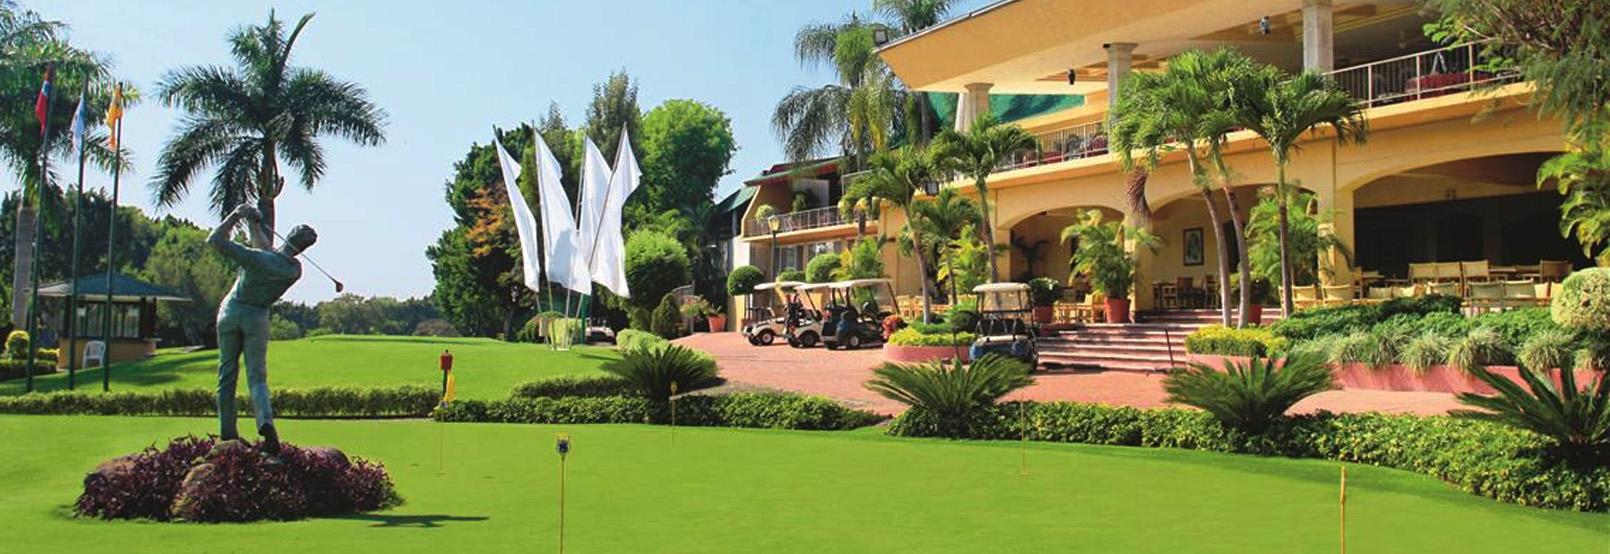 Club de Golf Los Tabachines.jpg